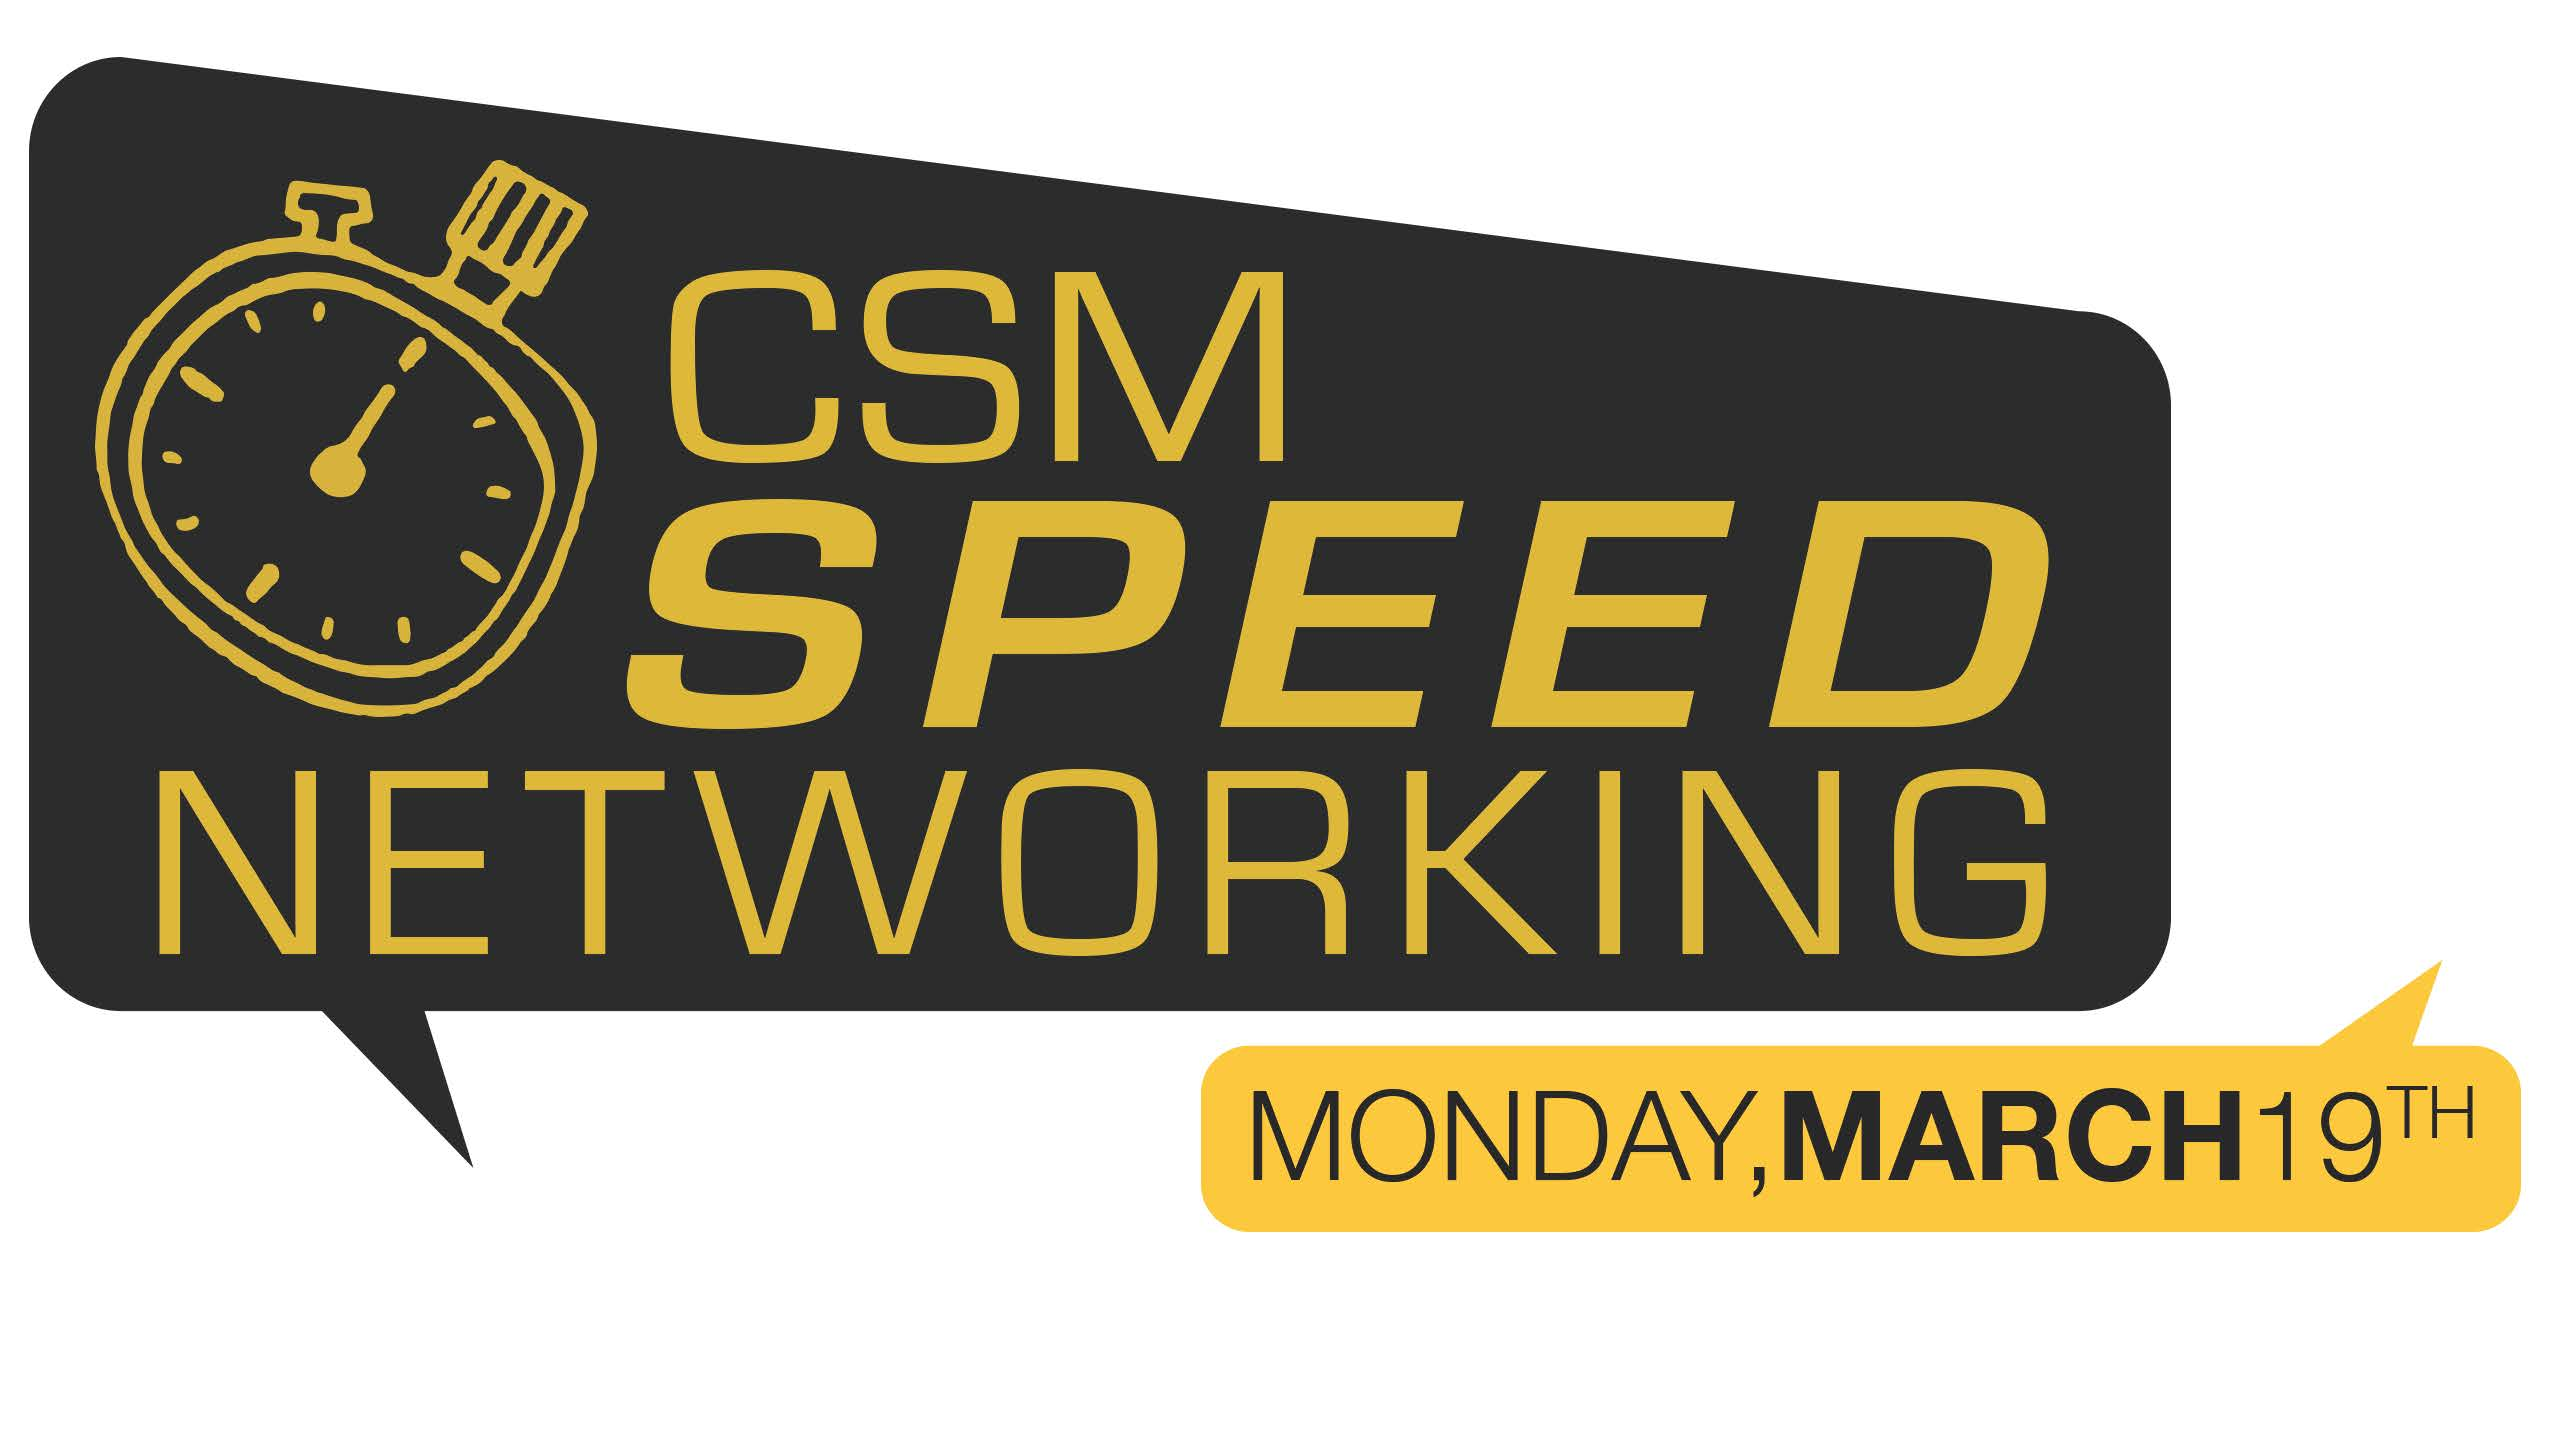 College of Science and Mathematics Speed Networking graphic logo with talk bubble and stopwatch elements - event is on Monday, March 19, 2018